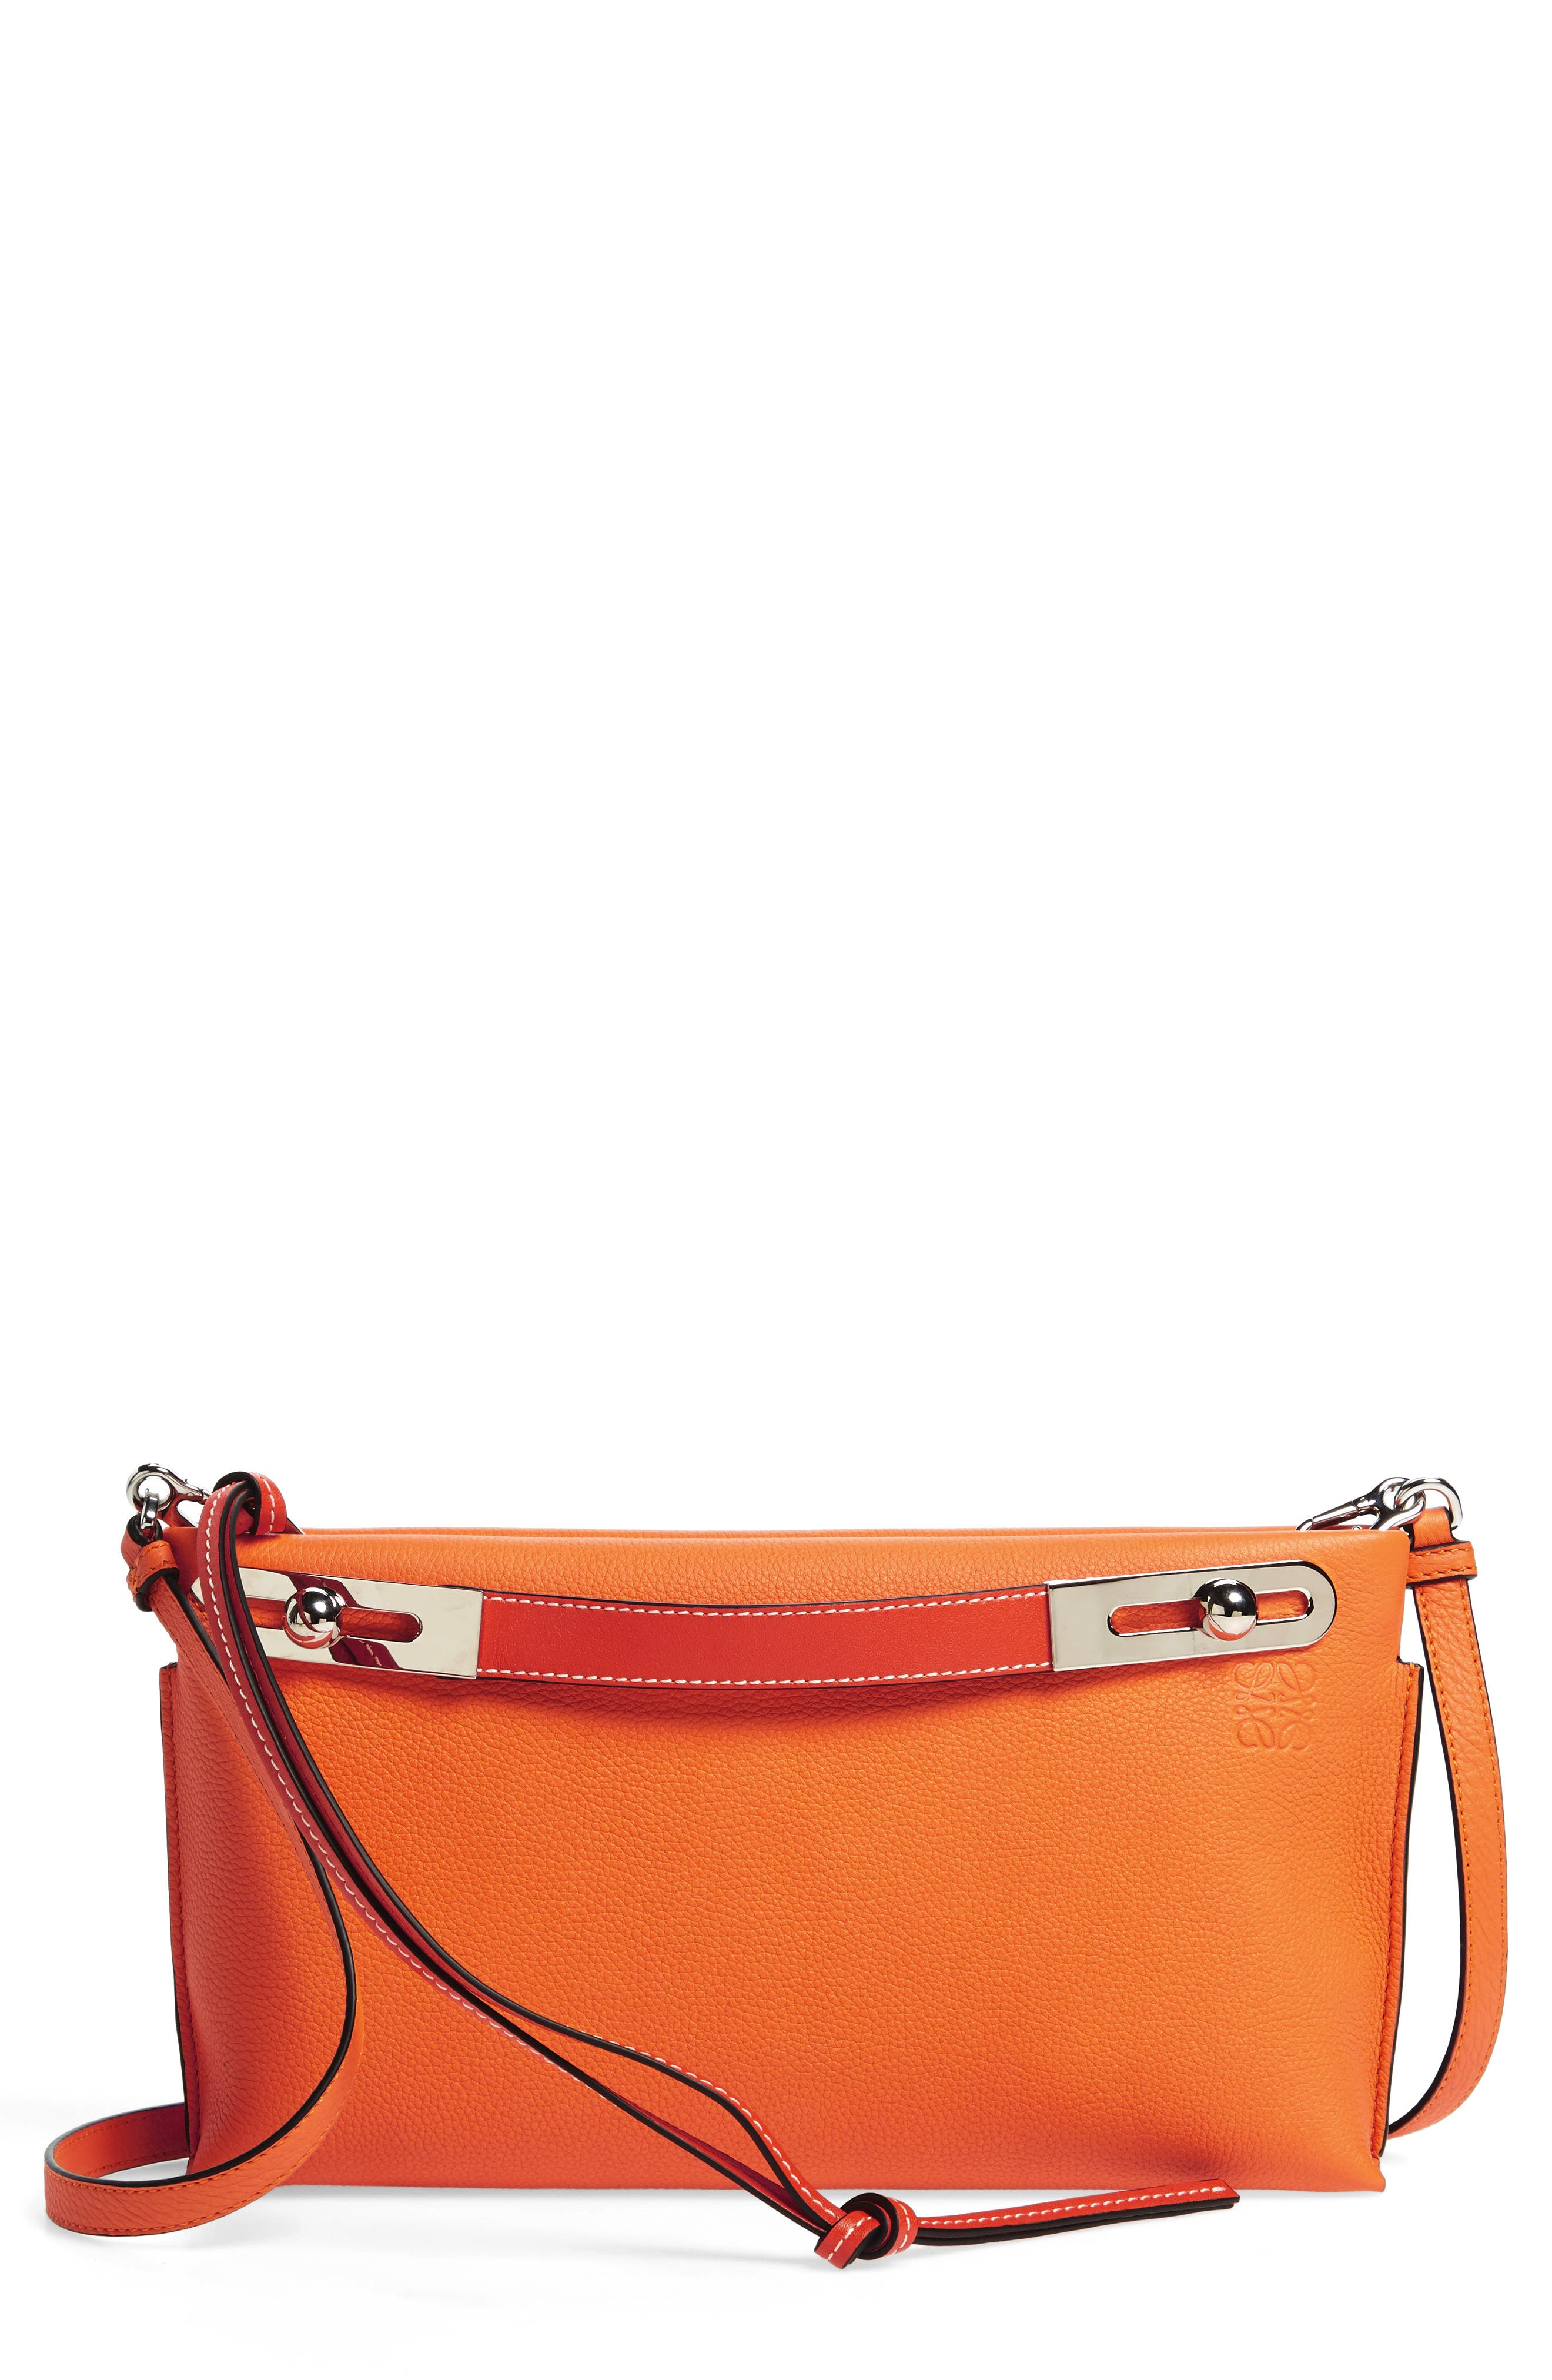 Loewe Small Missy Leather Crossbody Bag